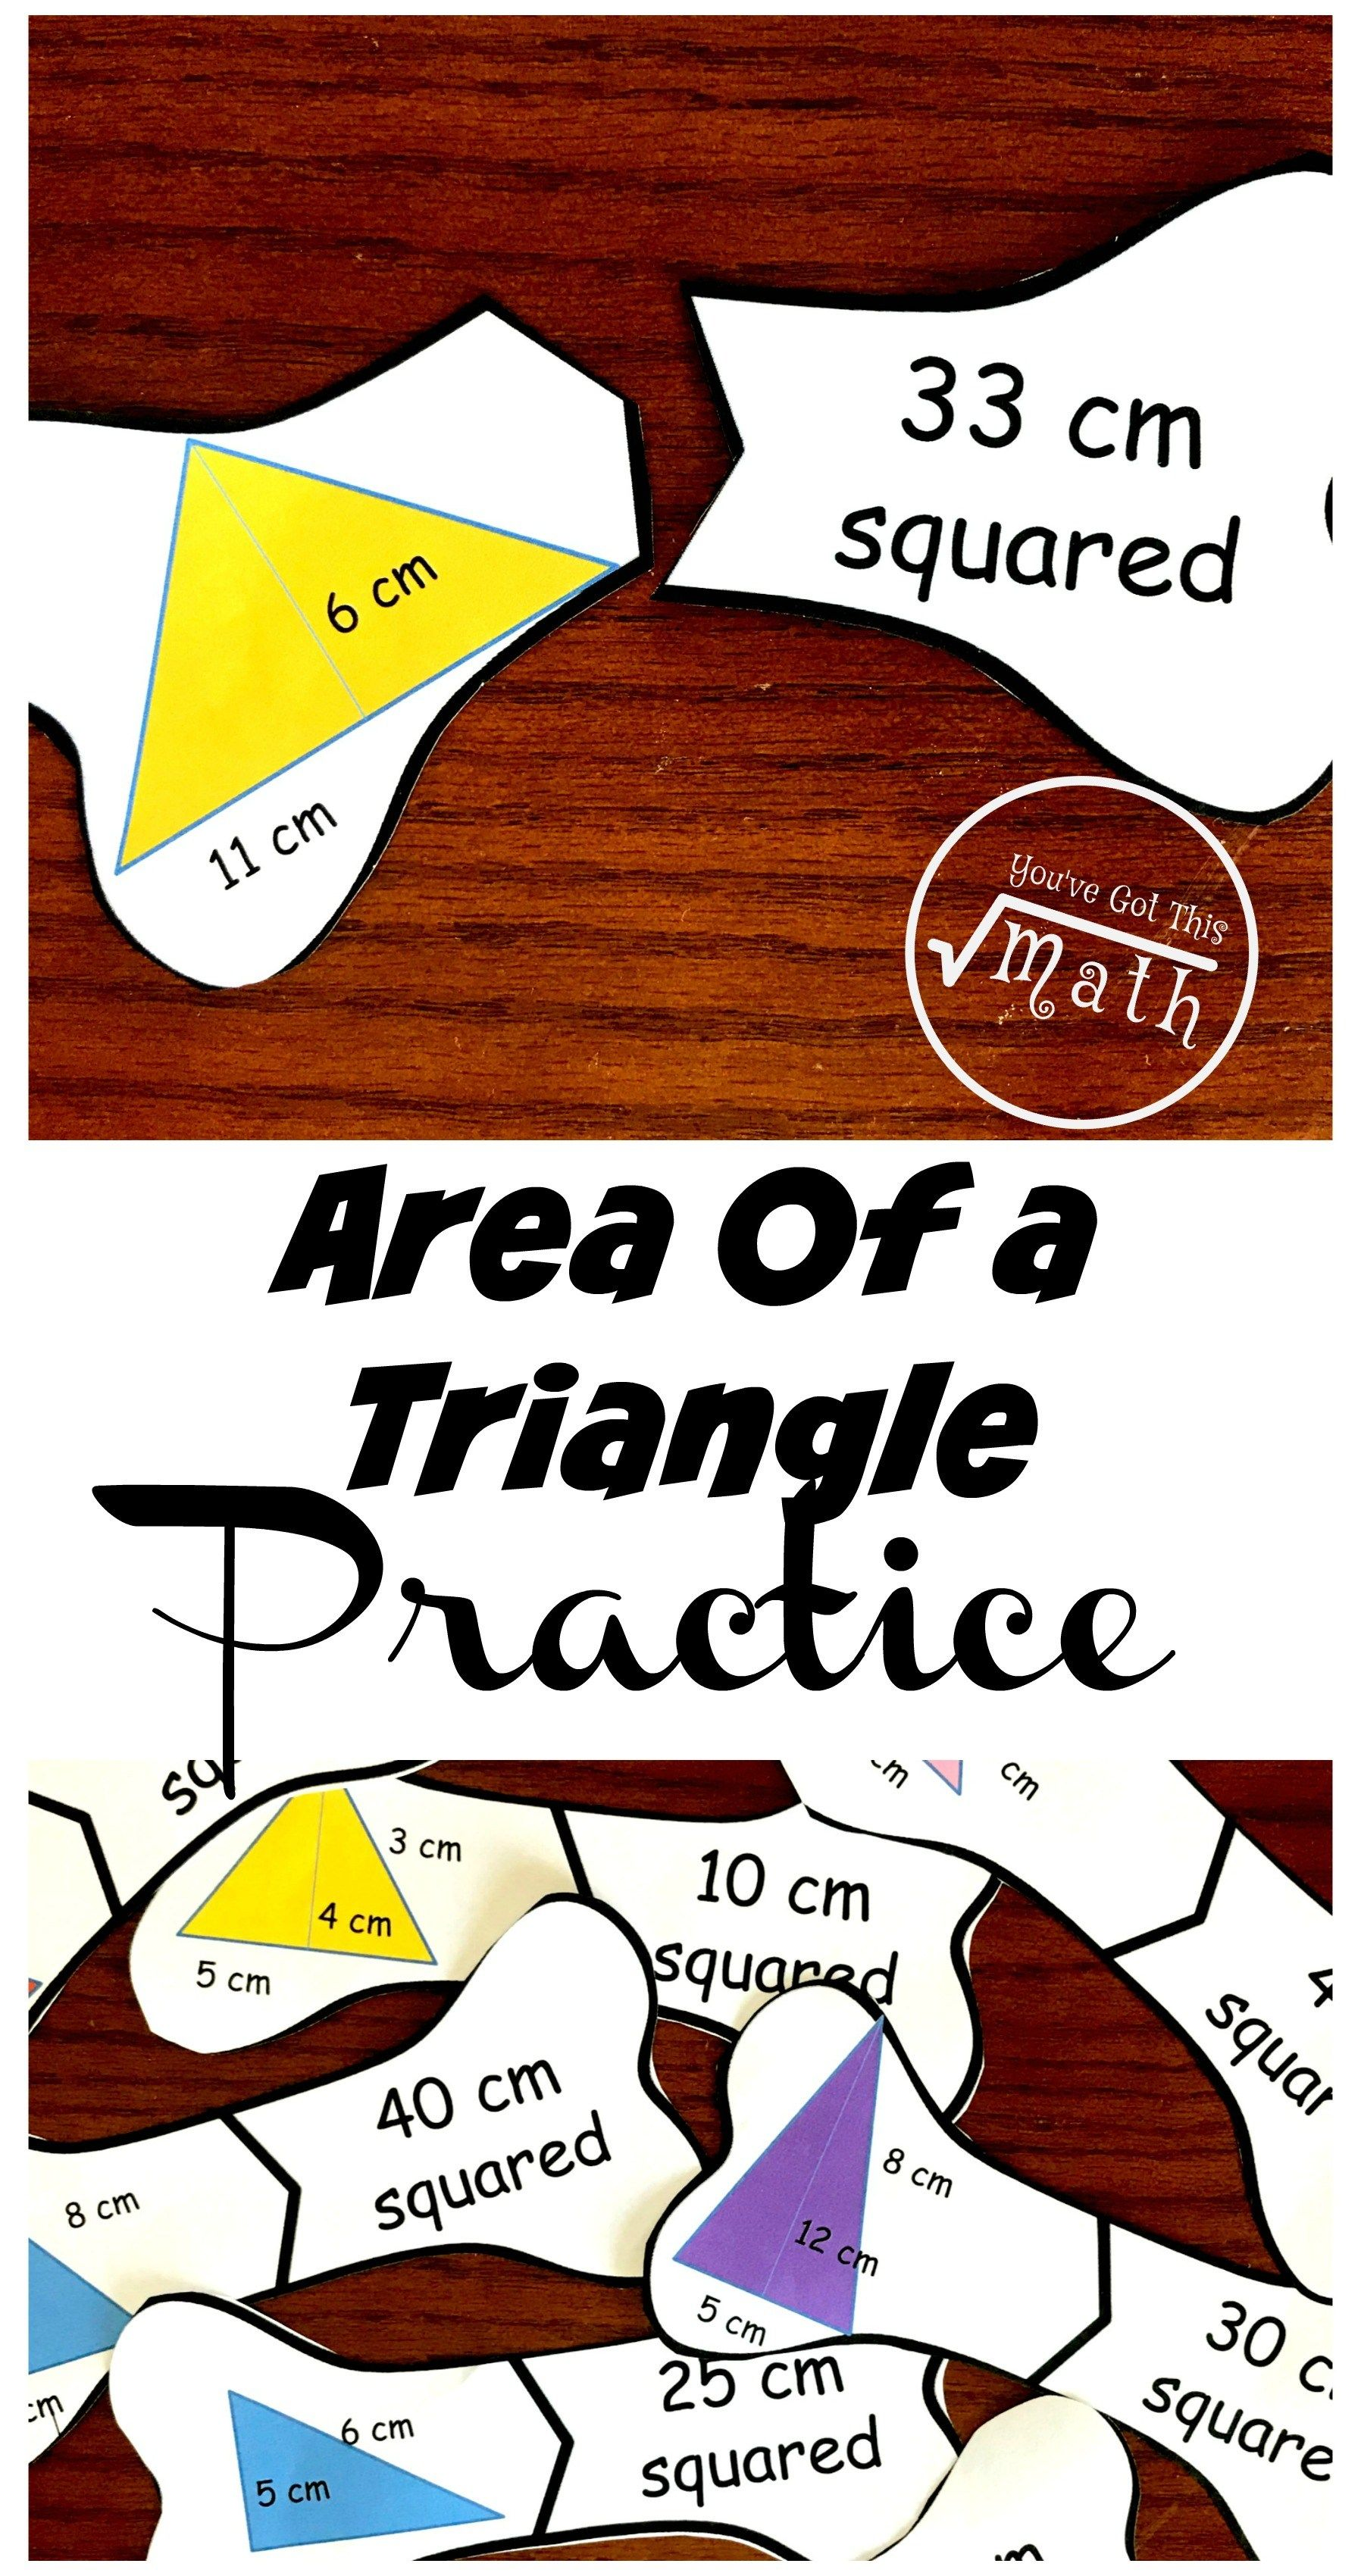 10 Helpful Puzzles To Provide Area Of A Triangle Problems